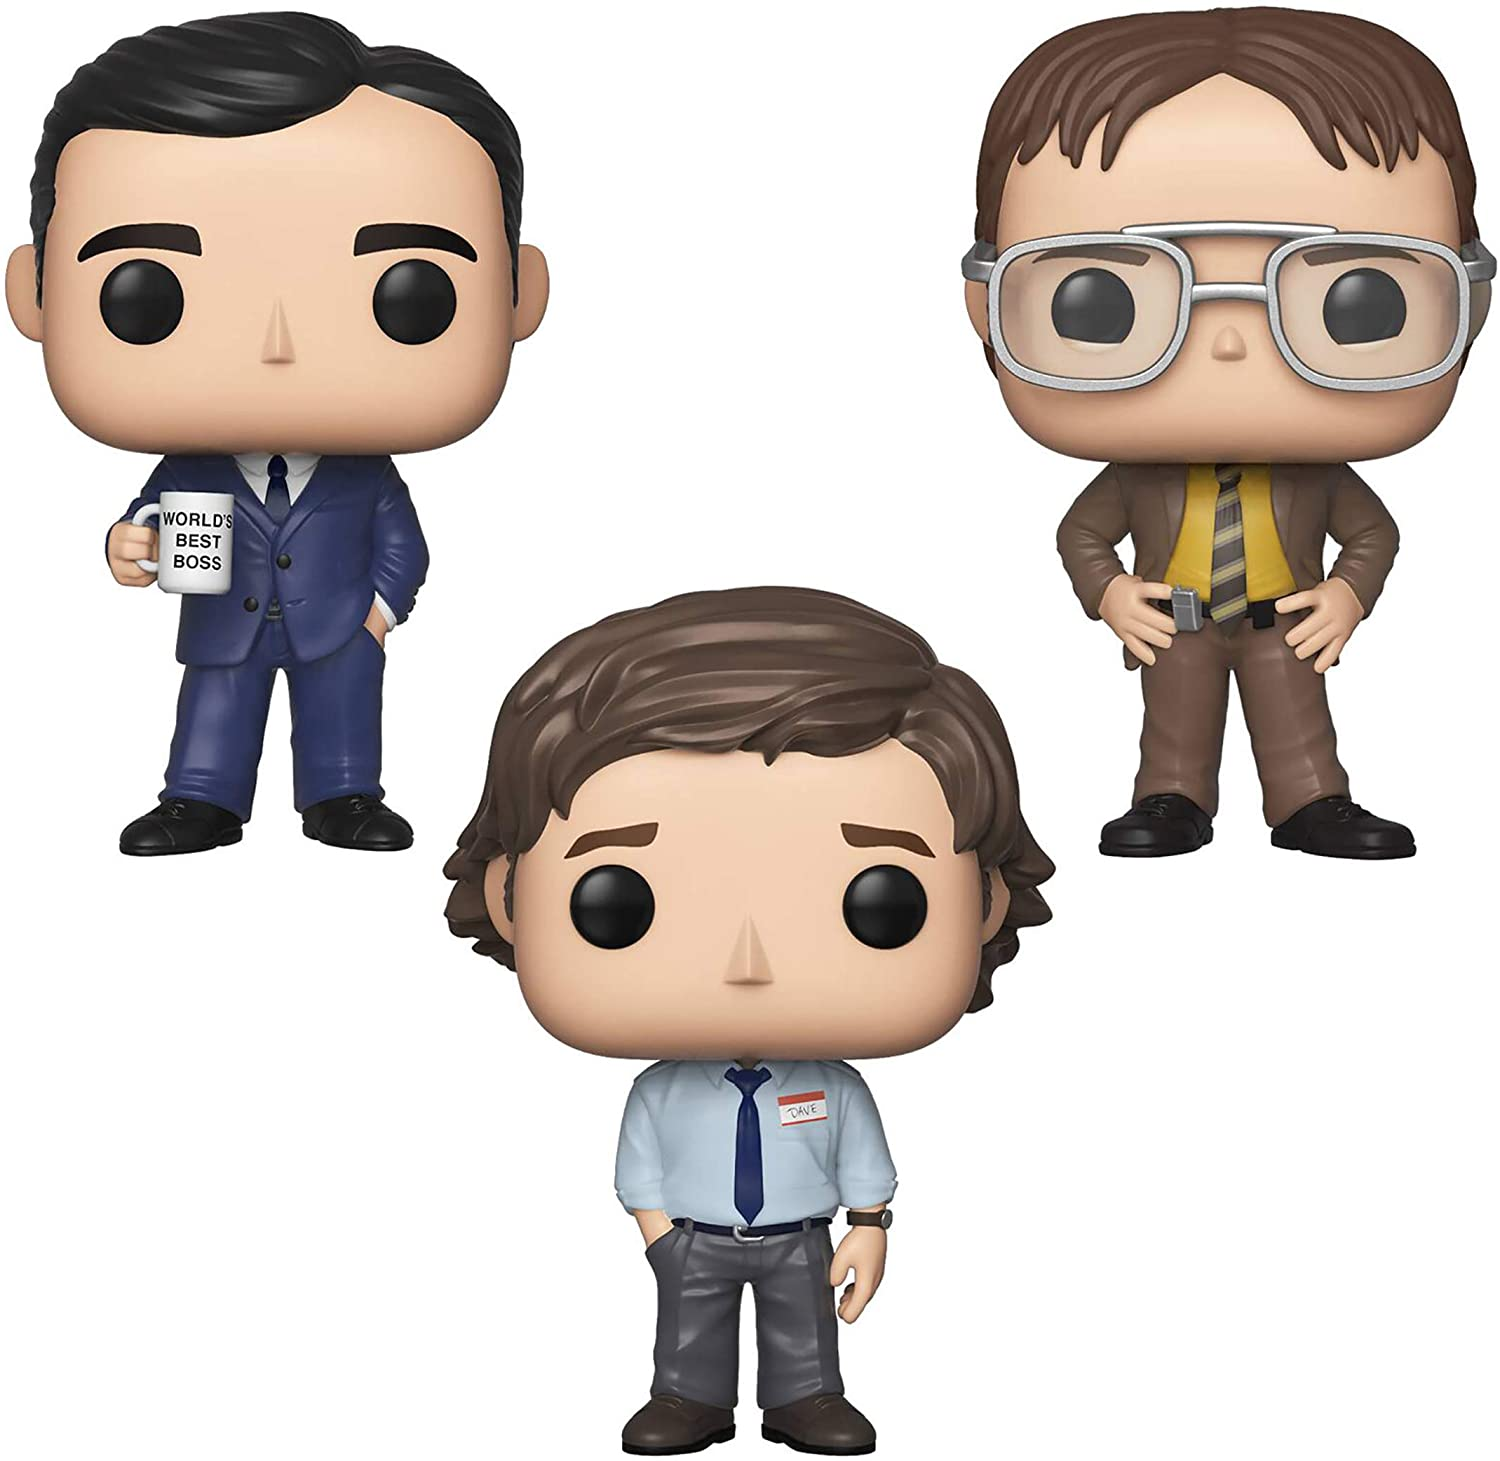 Funko TV: Pop! The Office - Michael Scott, Dwight Schrutte, Jim Halpert